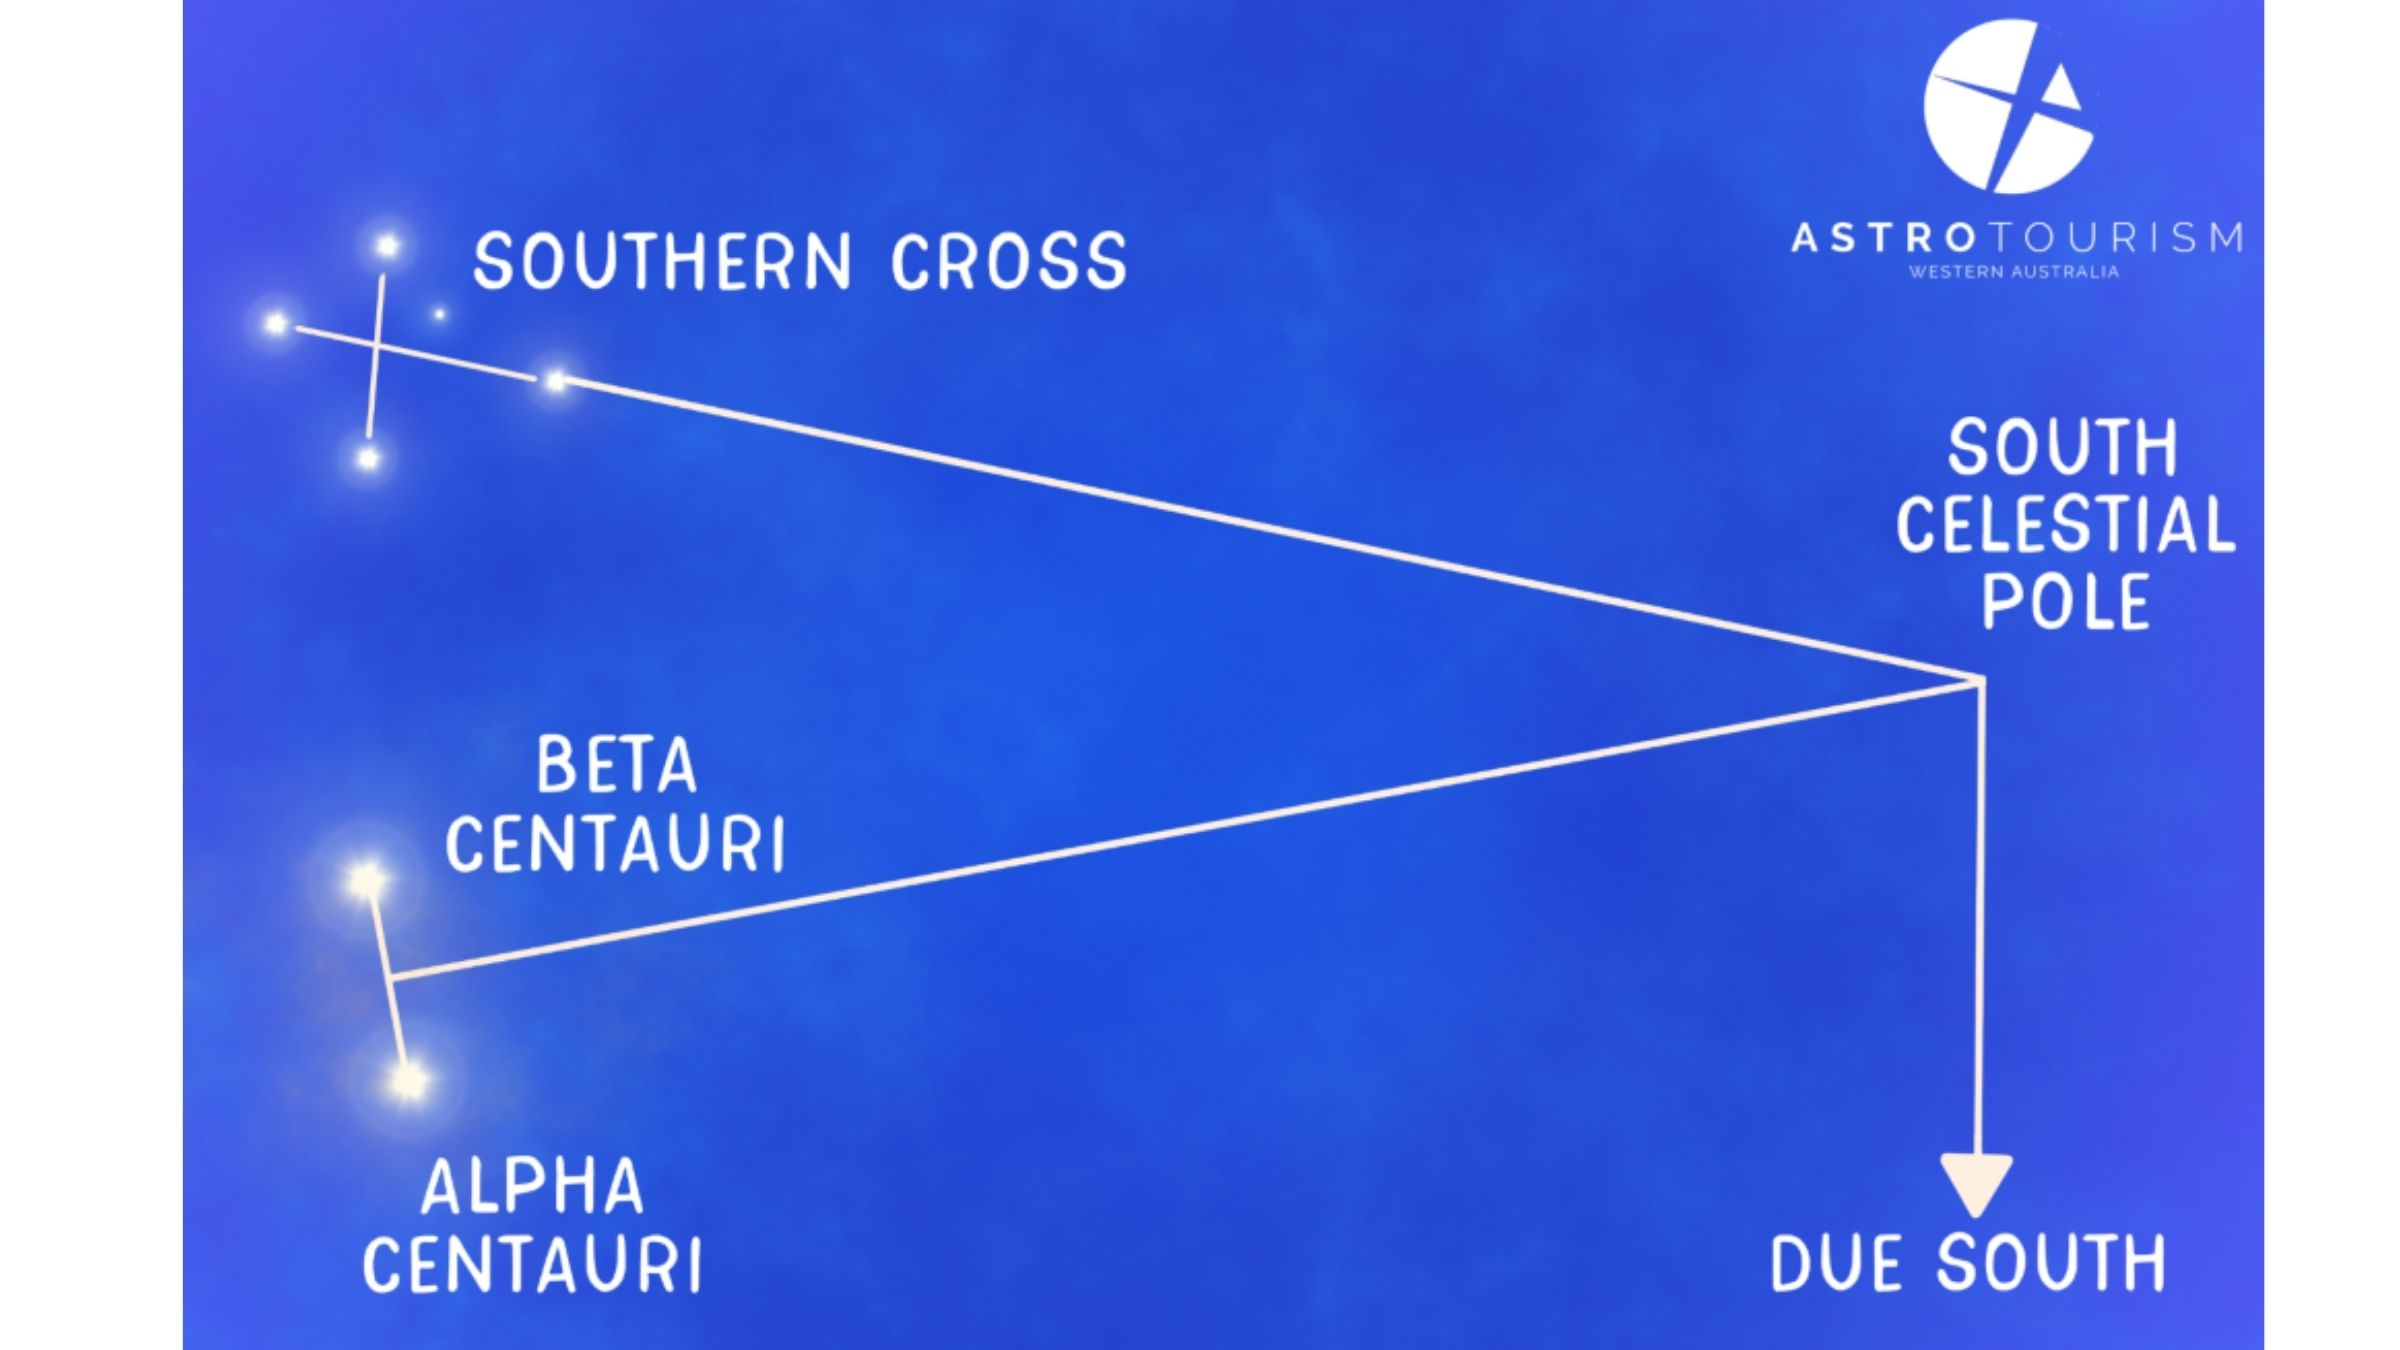 Southern Cross | April